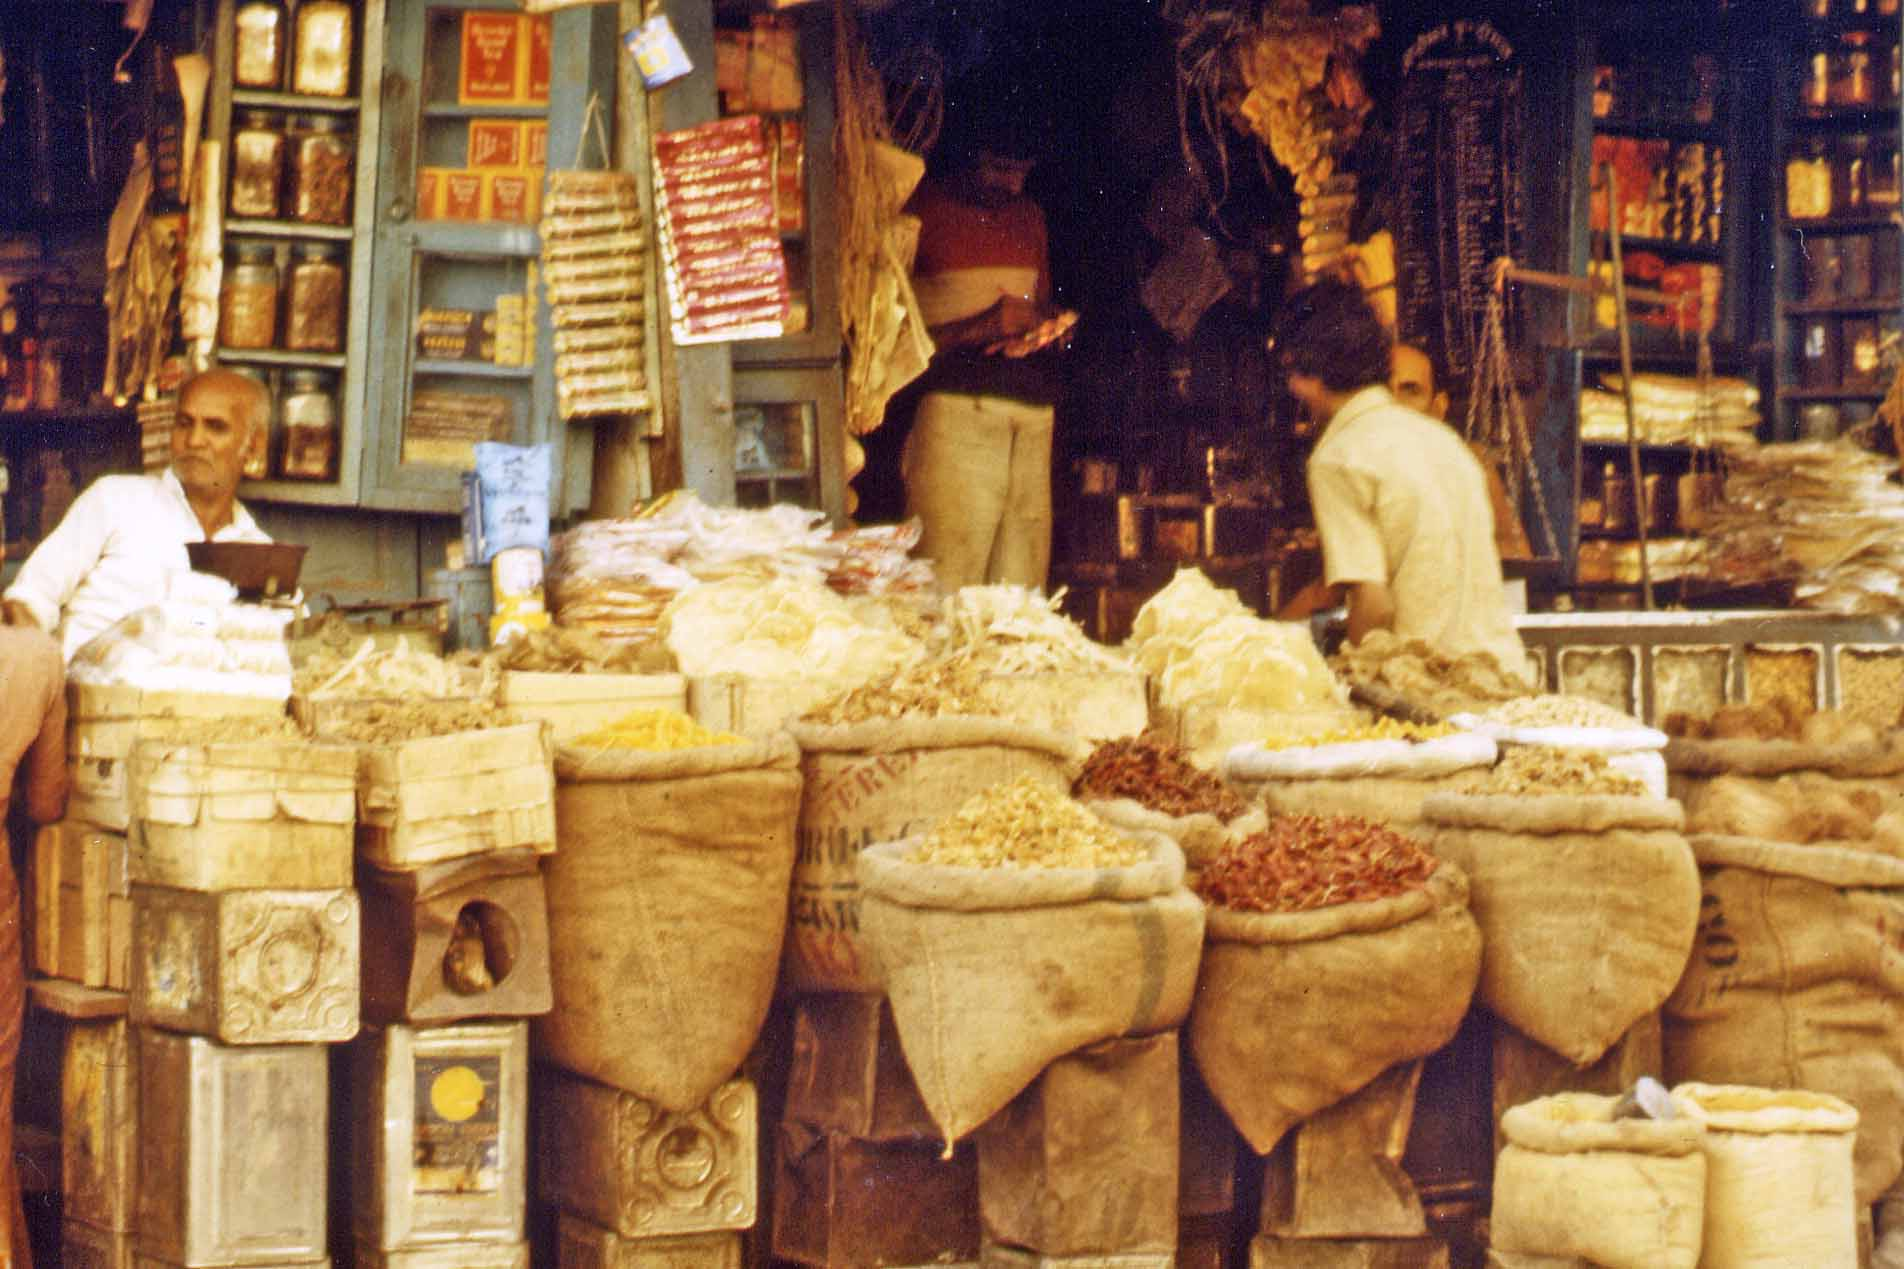 Spices at the market in India